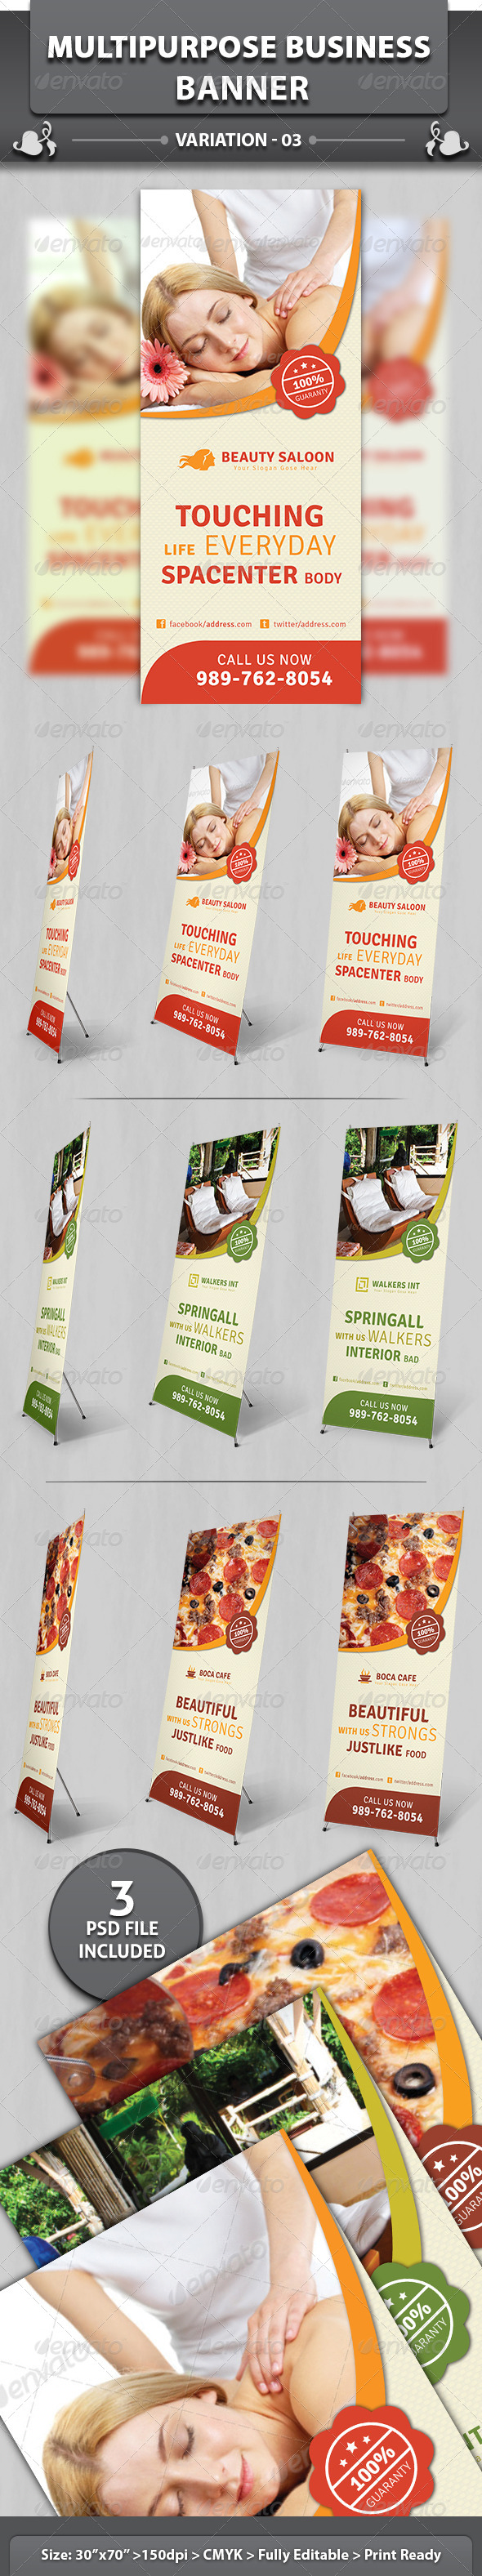 GraphicRiver Multipurpose Business Banner V2 5058380